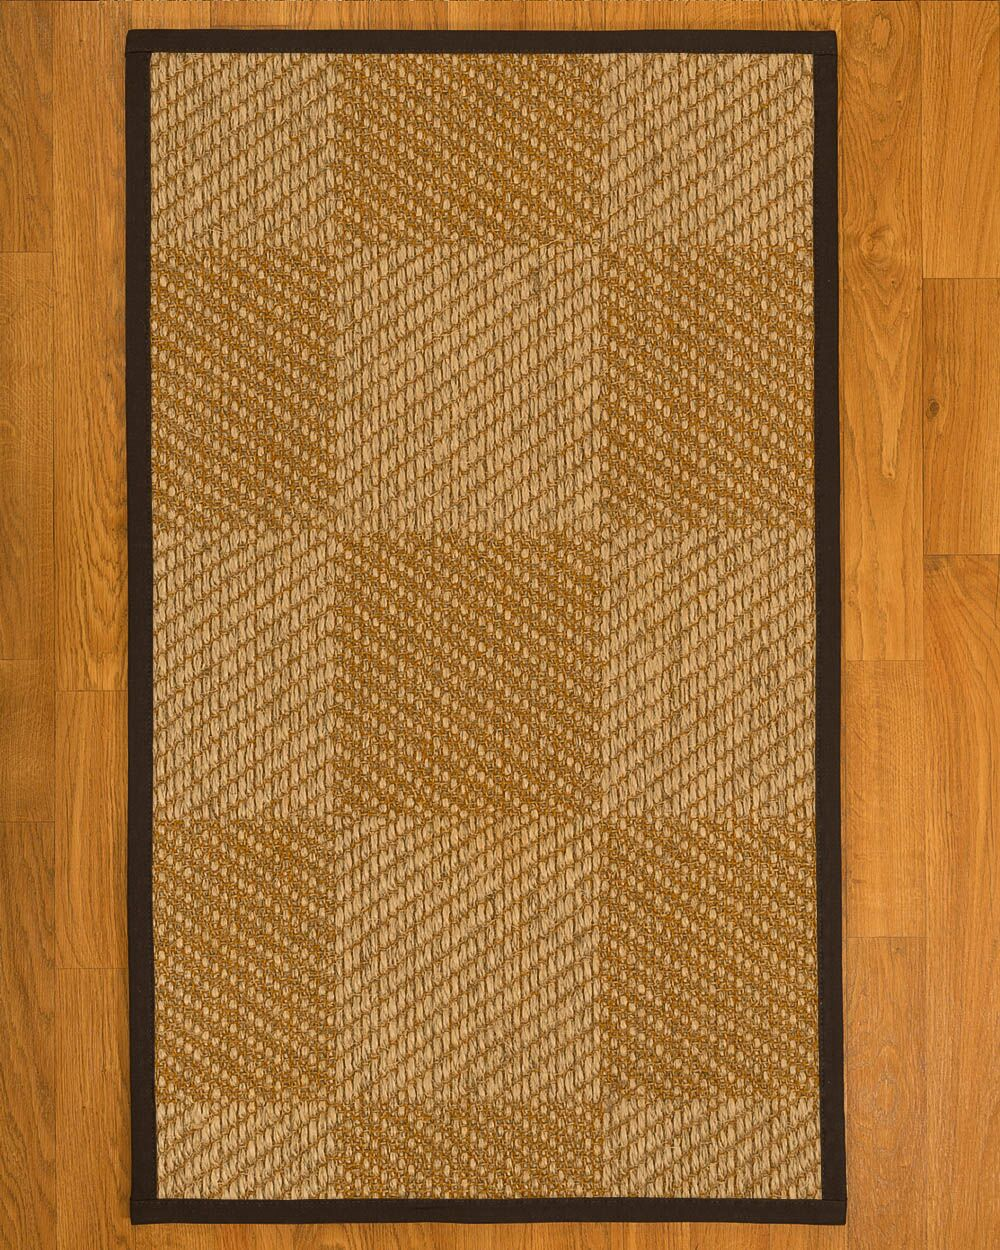 Adley Hand Woven Brown Area Rug Rug Size: Runner 2'6